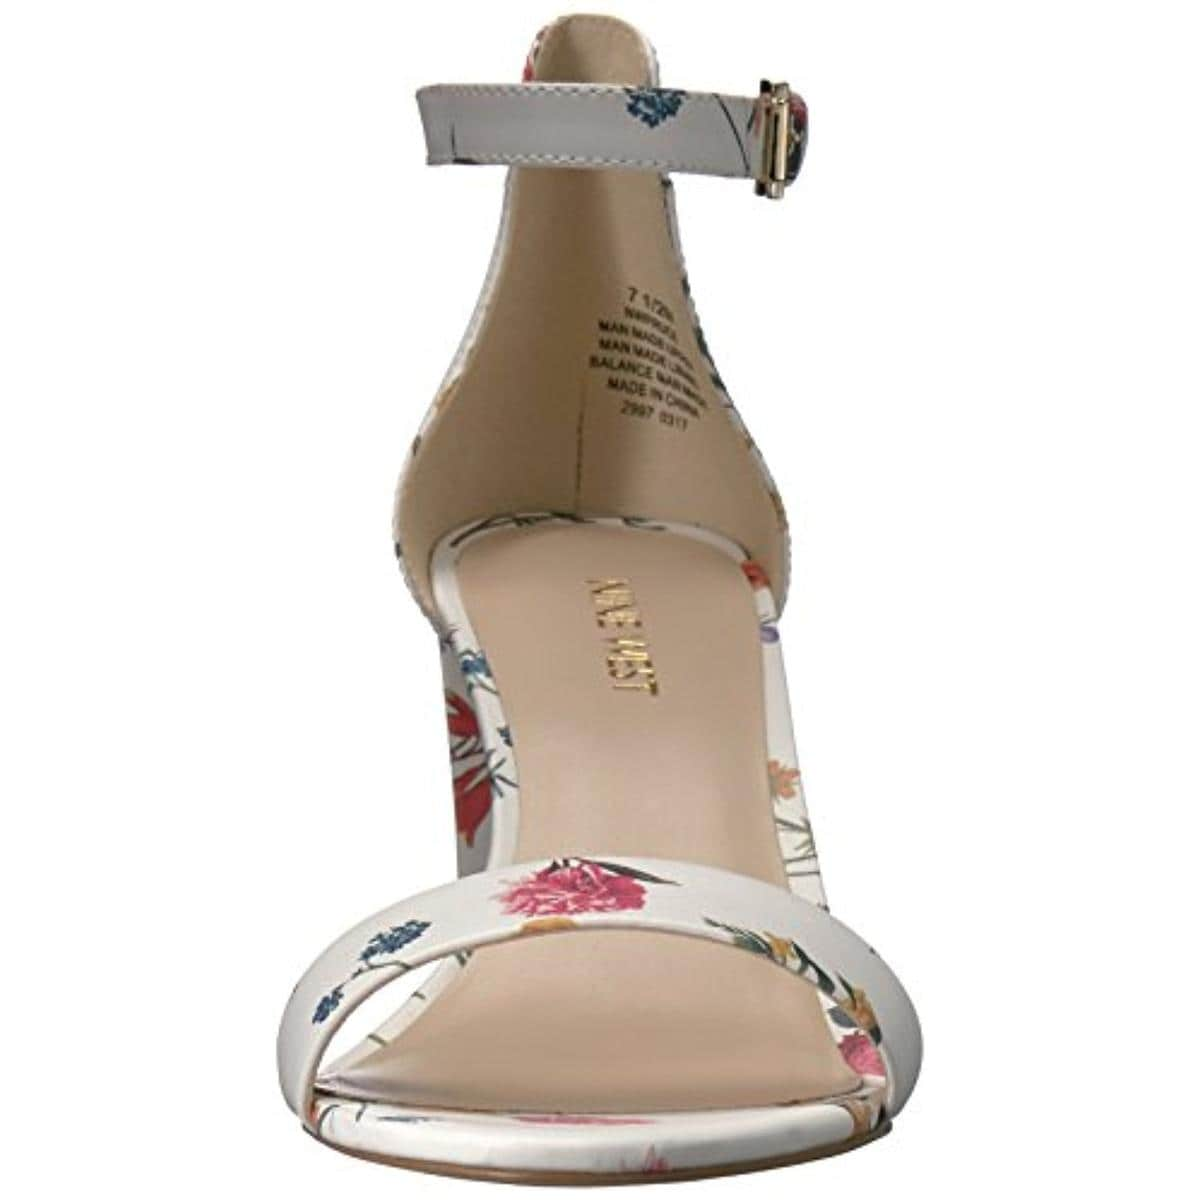 e33643d3c03 Shop Nine West Womens Pruce Dress Sandals Block Heel - Free Shipping On  Orders Over  45 - Overstock - 21139685